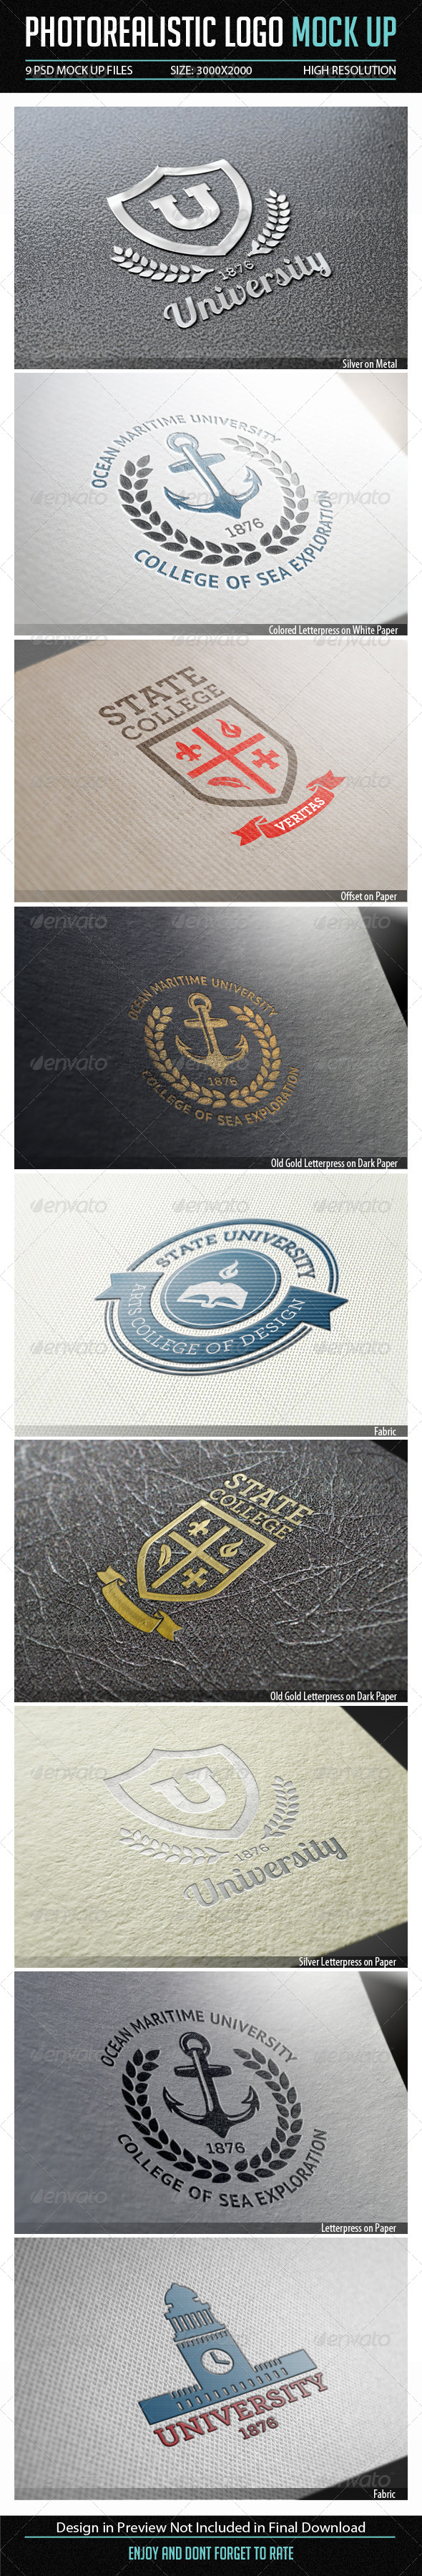 GraphicRiver Photorealistic Logo Mock Up 7864572